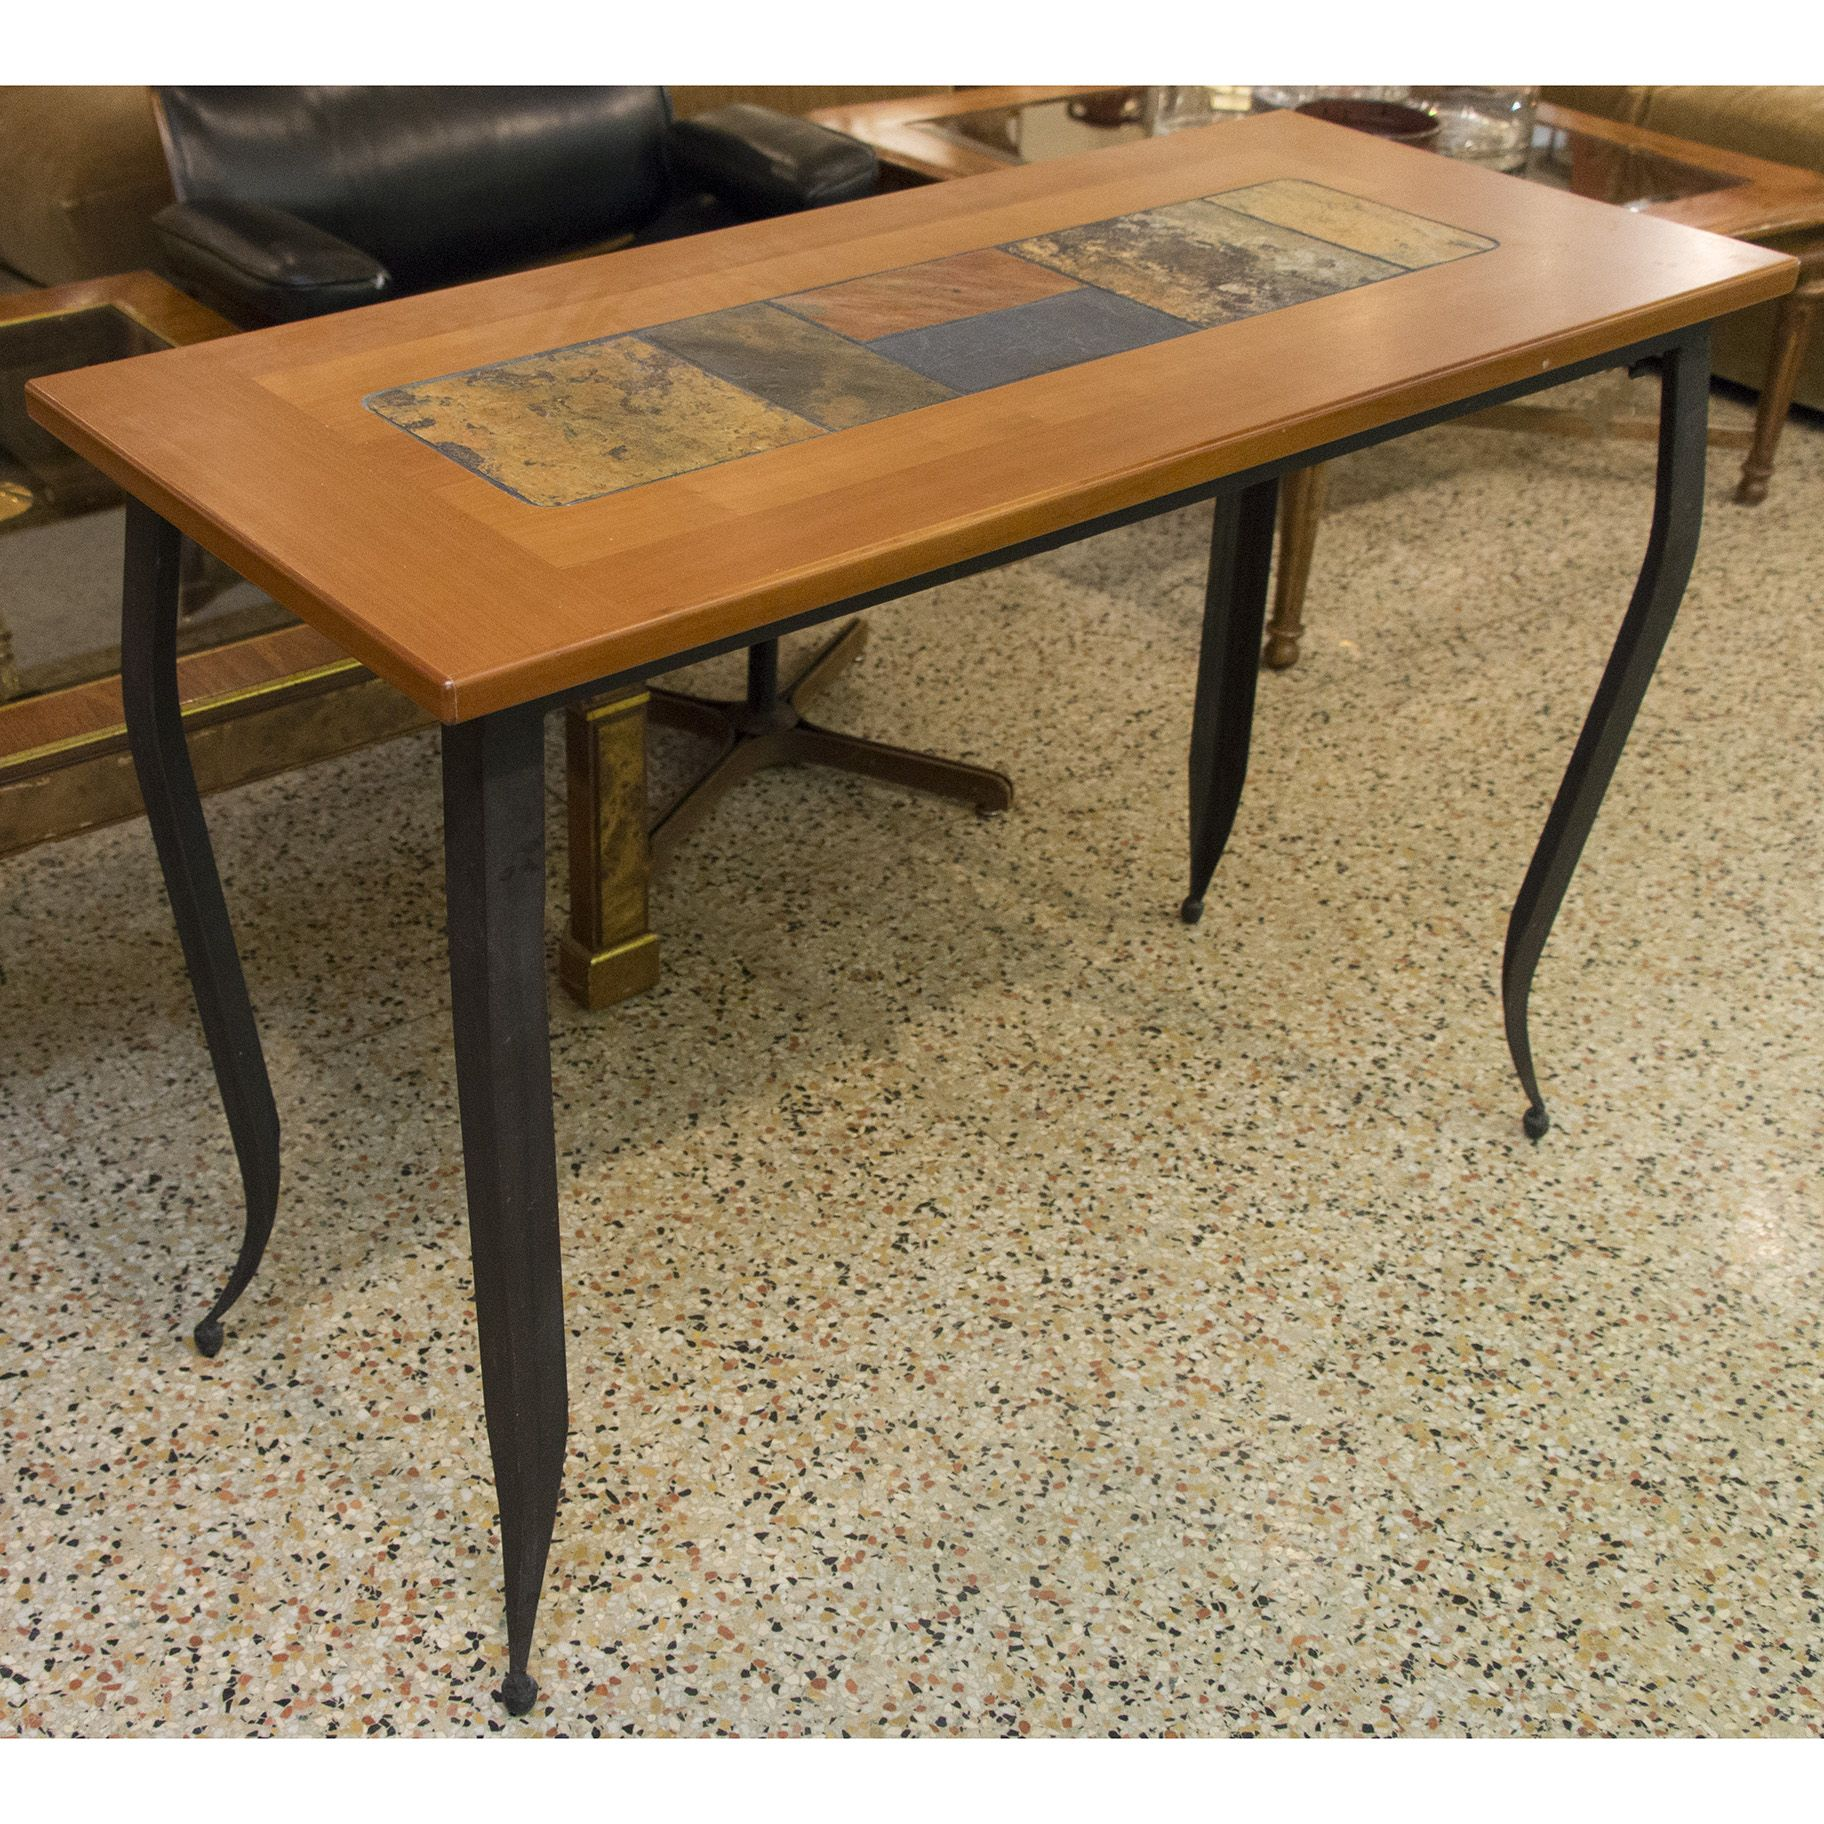 Sofa table with iron legs and slate tile top living room sofa table with iron legs and slate tile top geotapseo Gallery